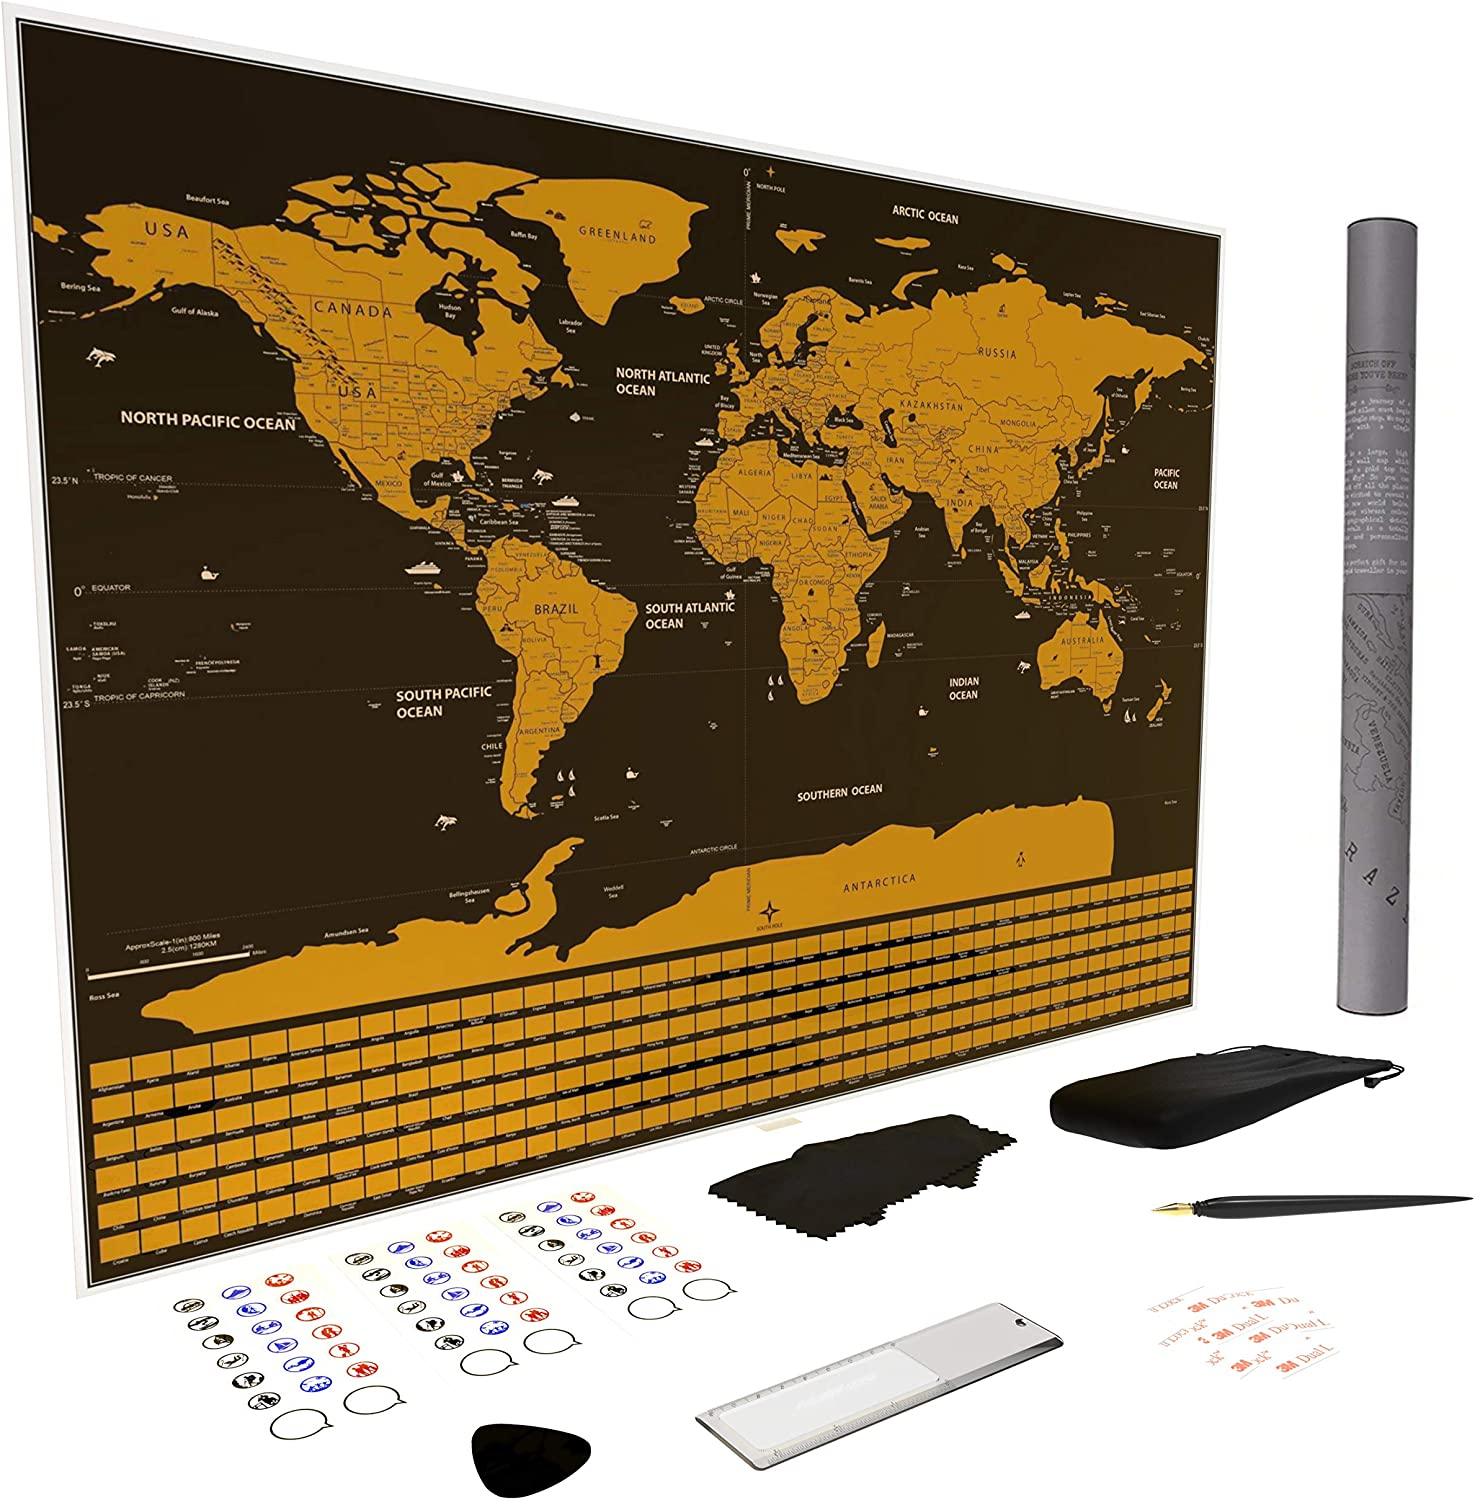 Atlas Maps World Map Scratch Off | 33x24 Huge Framable Poster Gift with Deluxe Accessories Set | Large Travel Scratchable is Perfect for Office or Home Decor | Unique Premium Traveler Art